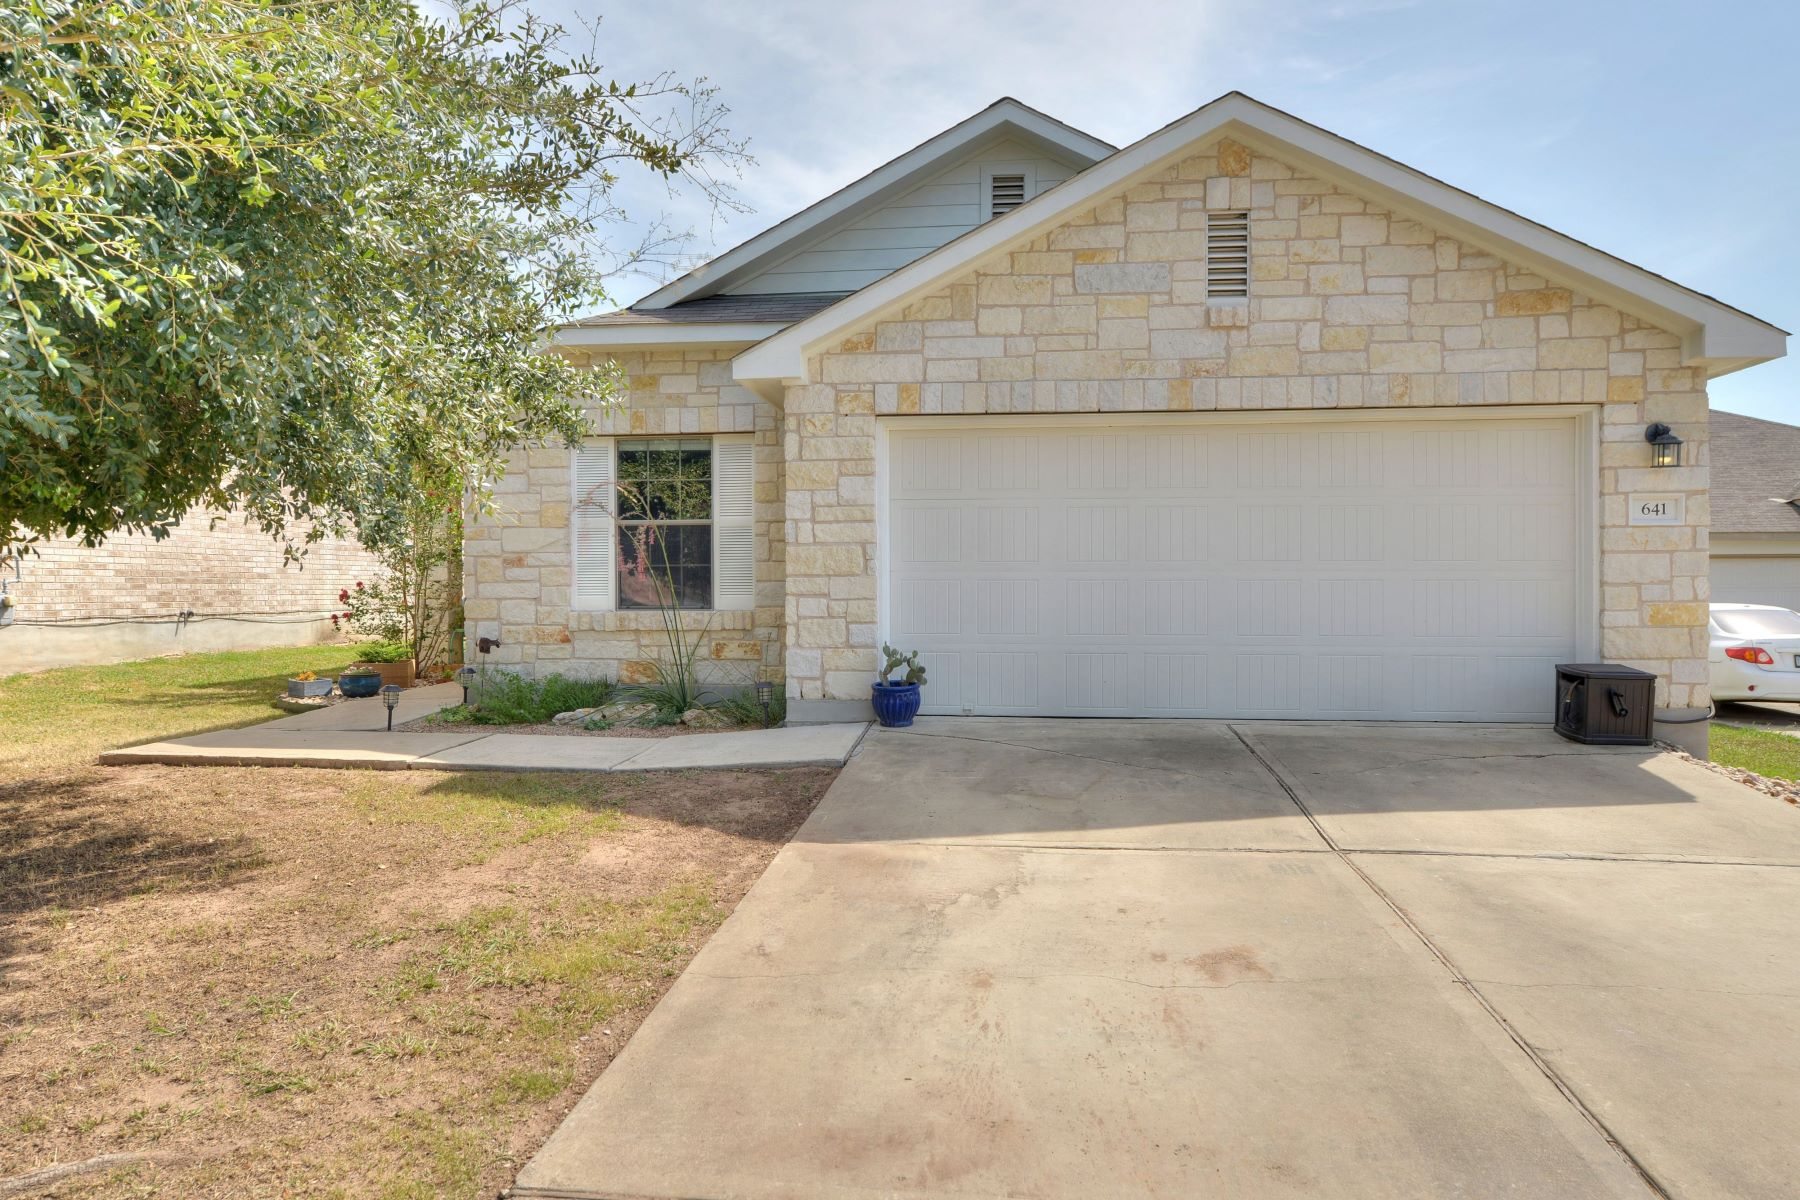 Single Family Homes for Active at 641 Quarter Avenue, Buda, TX 78610 641 Quarter Avenue Buda, Texas 78610 United States